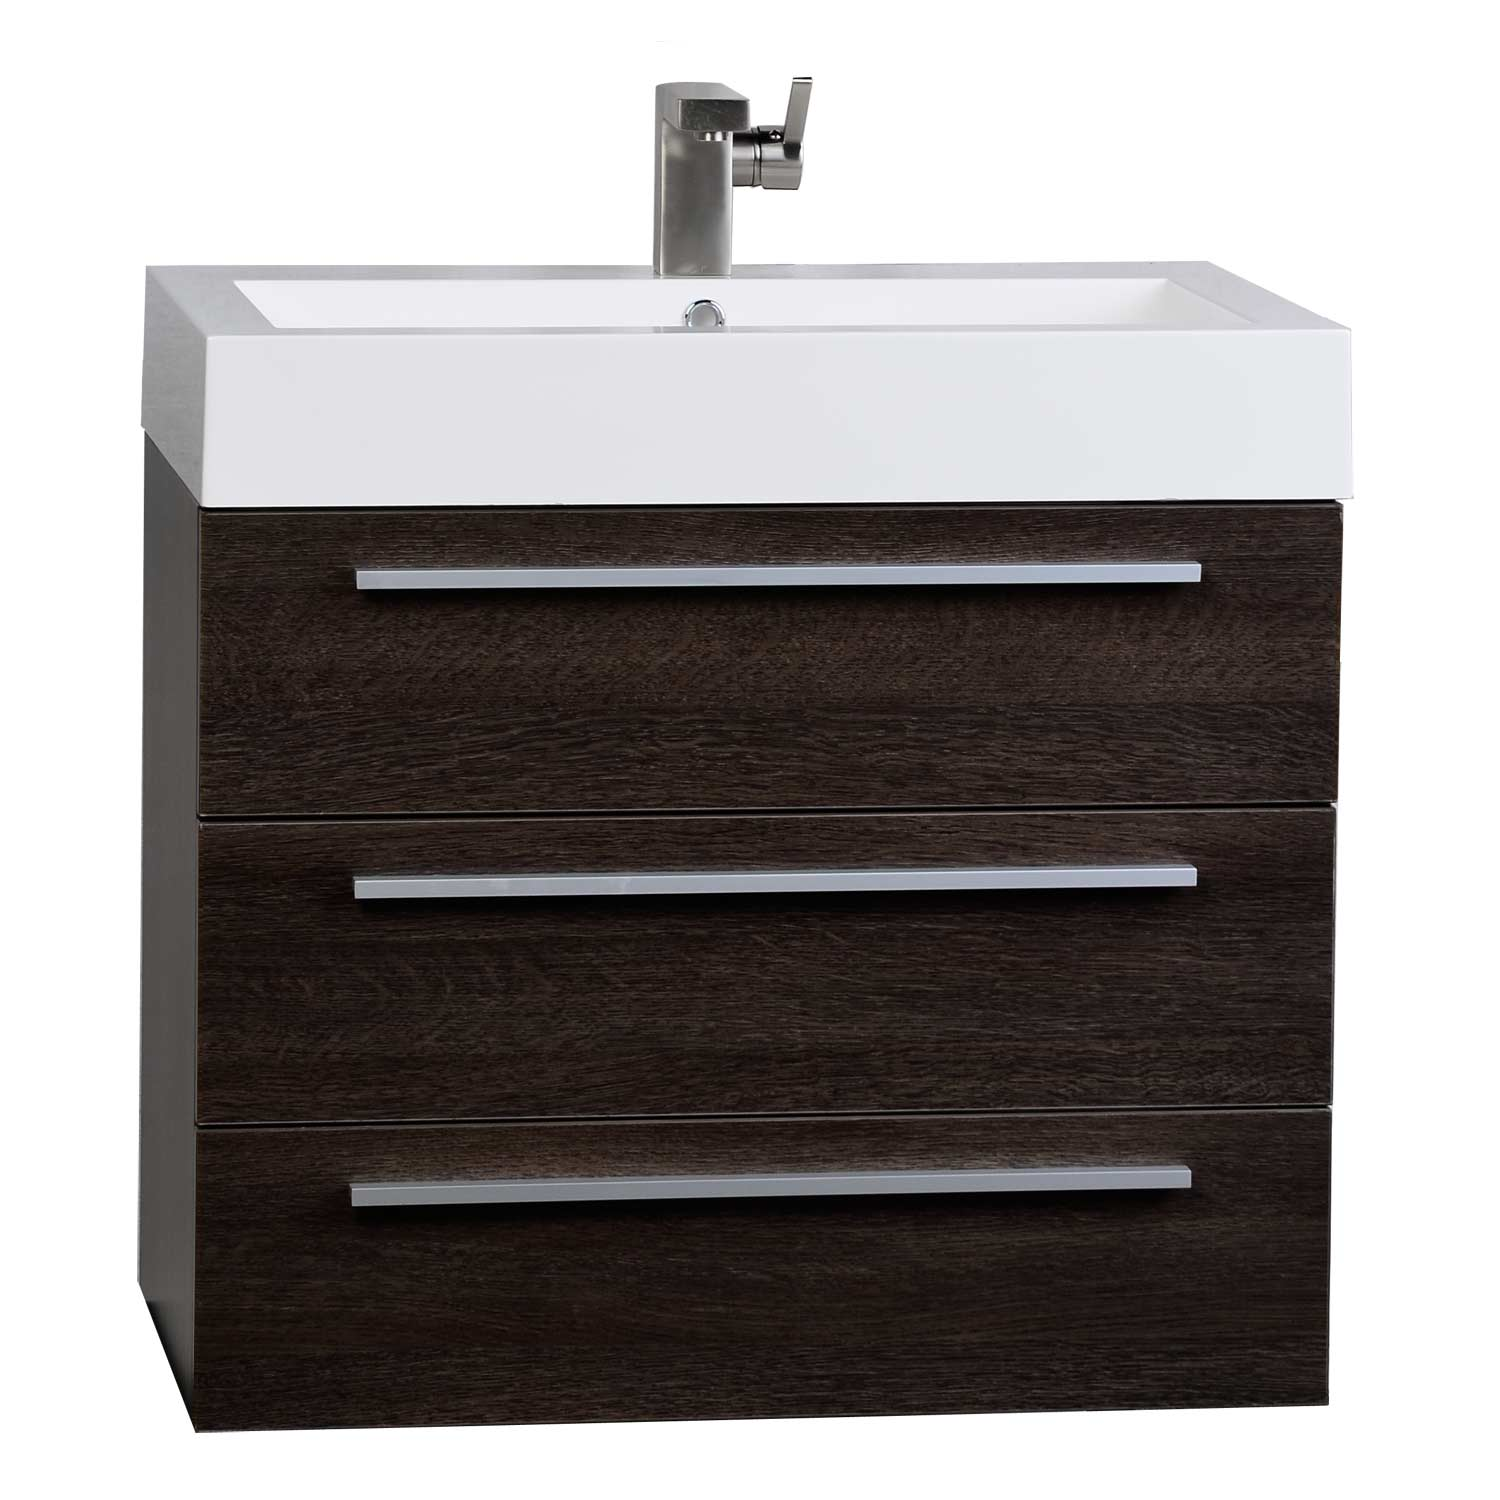 Modern 29 5 inch wall mounted single bathroom vanity set for Restroom vanity